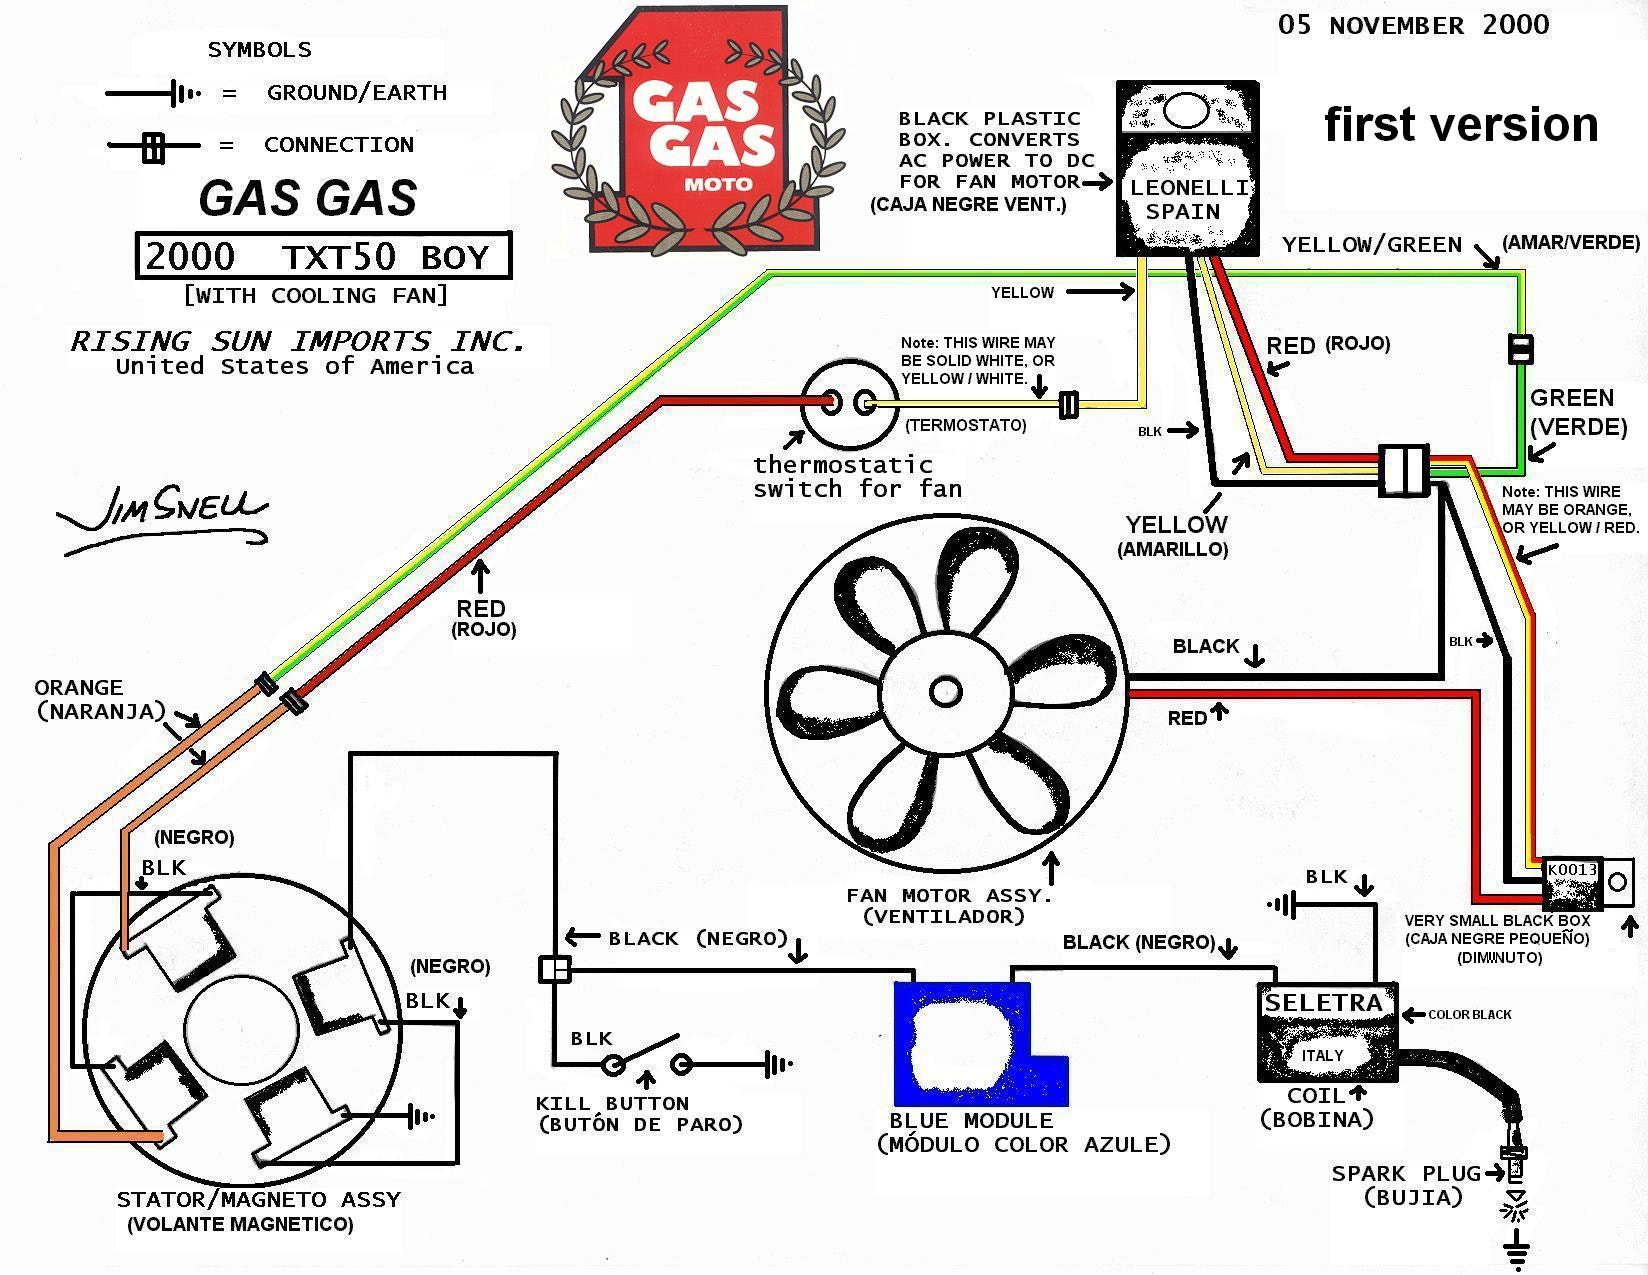 Cdi Wiring Diagram | Hastalavista - Cdi Wiring Diagram